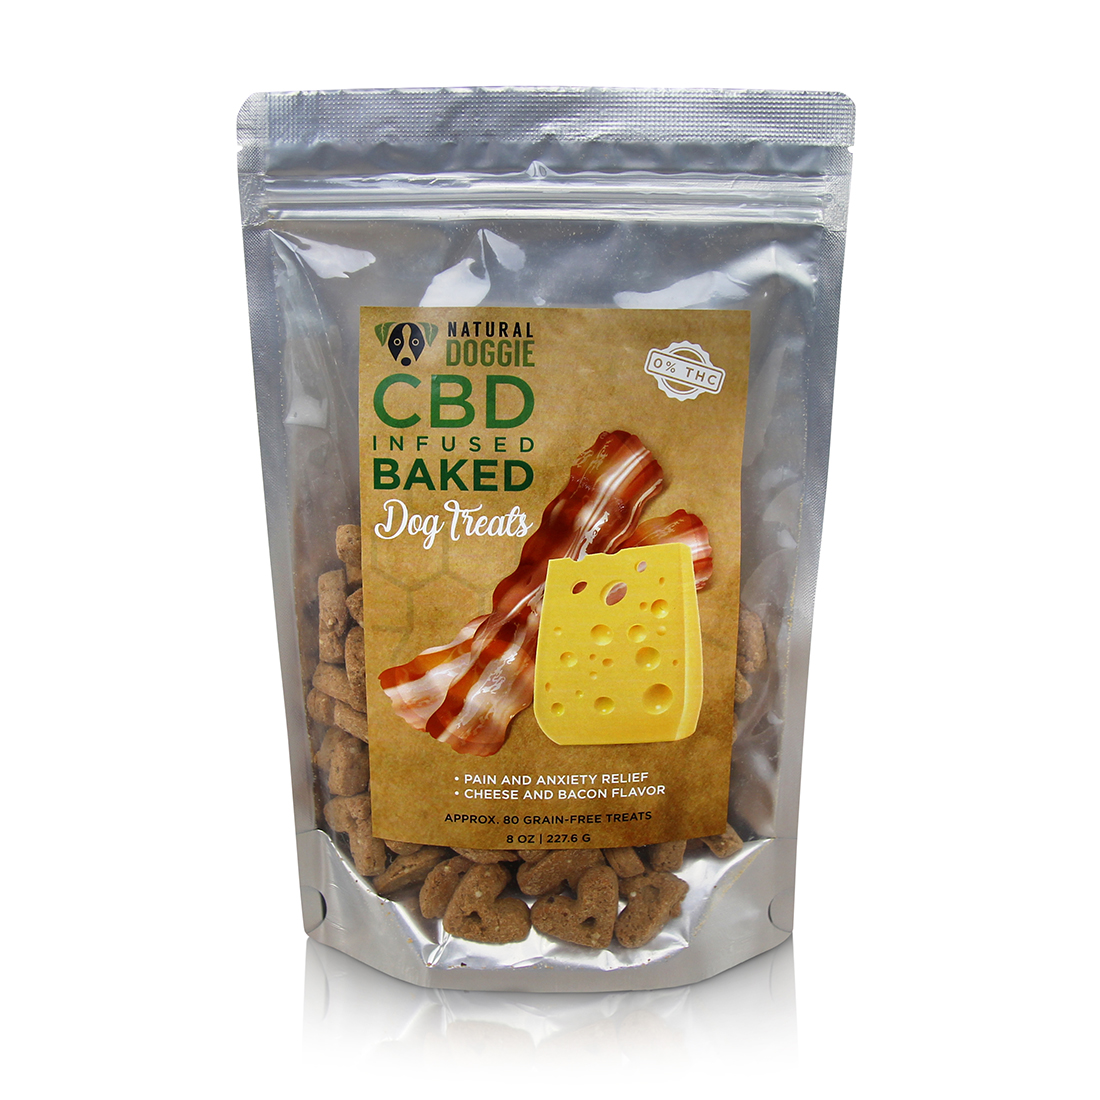 CBD INFUSED BAKED TREATS - Anxiety and pain relief in a cheese and bacon flavored treat your dog will love!